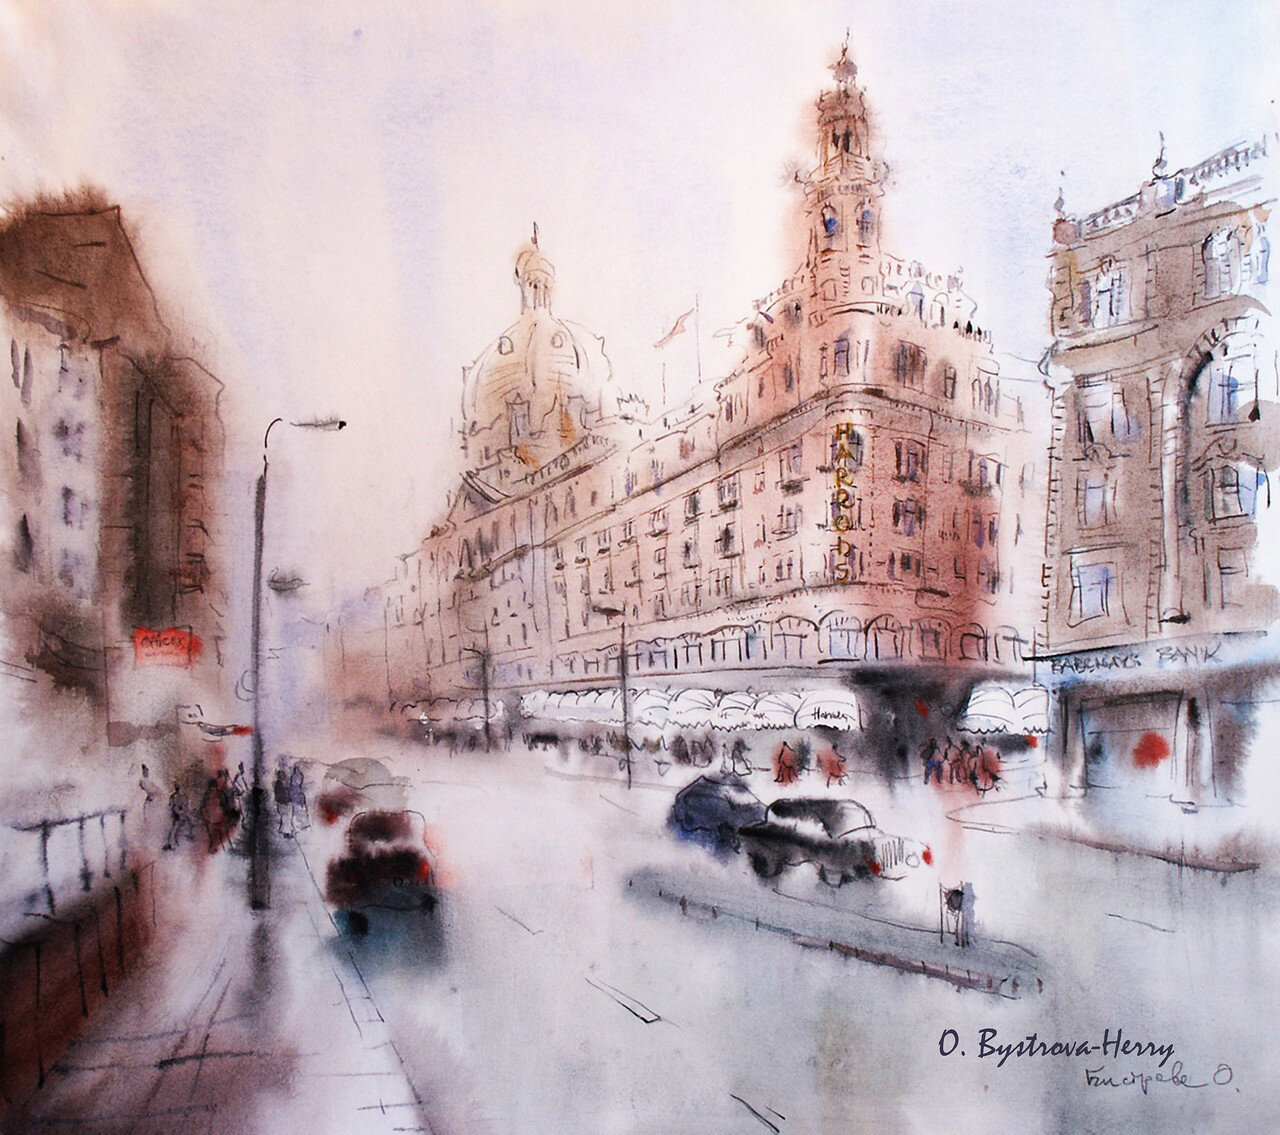 London HARRODS, aquarelle 57x55 cm